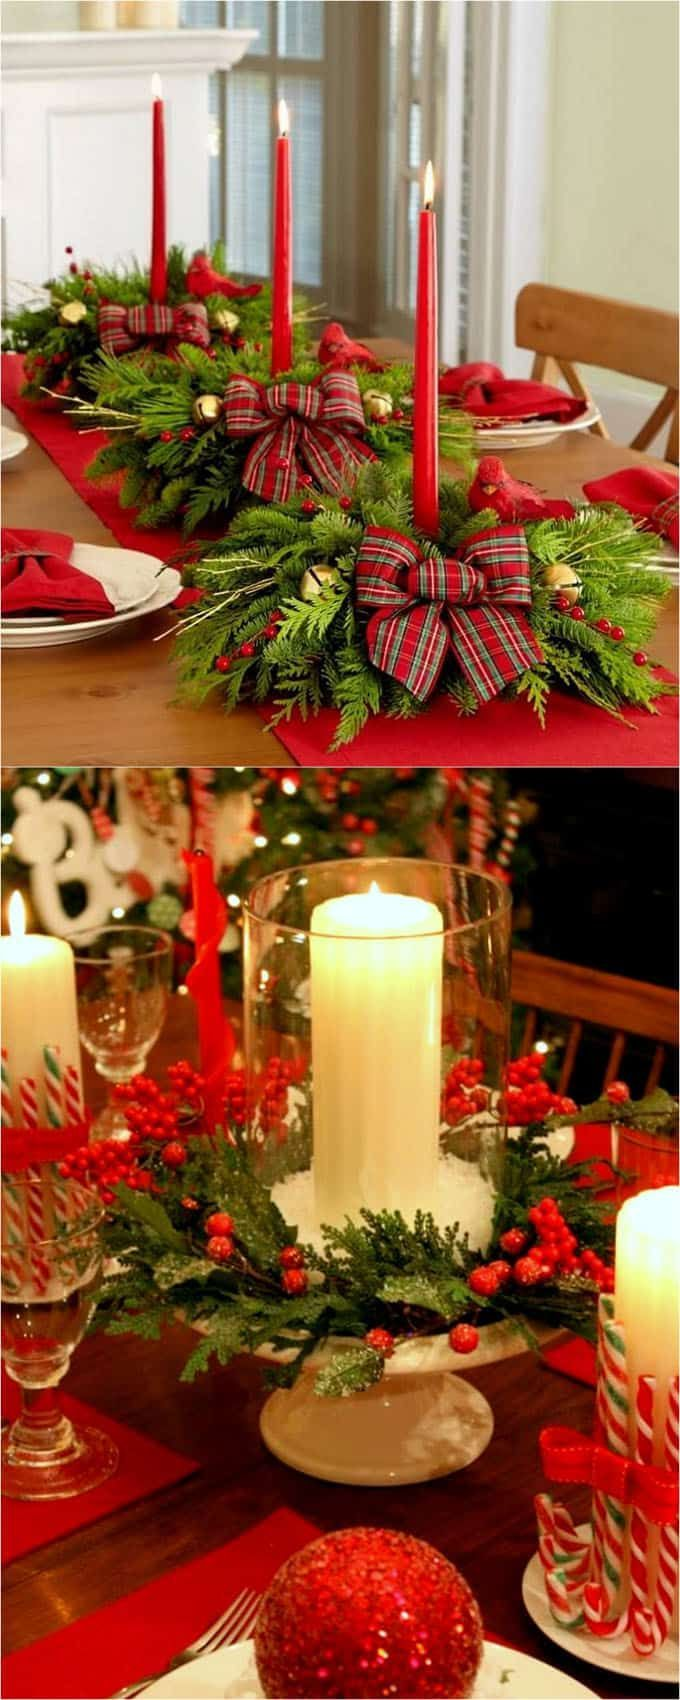 27 Gorgeous Easy Diy Thanksgiving And Christmas Table Decorations Christmas Table Decorations Centerpiece Christmas Table Centerpieces Christmas Centerpieces